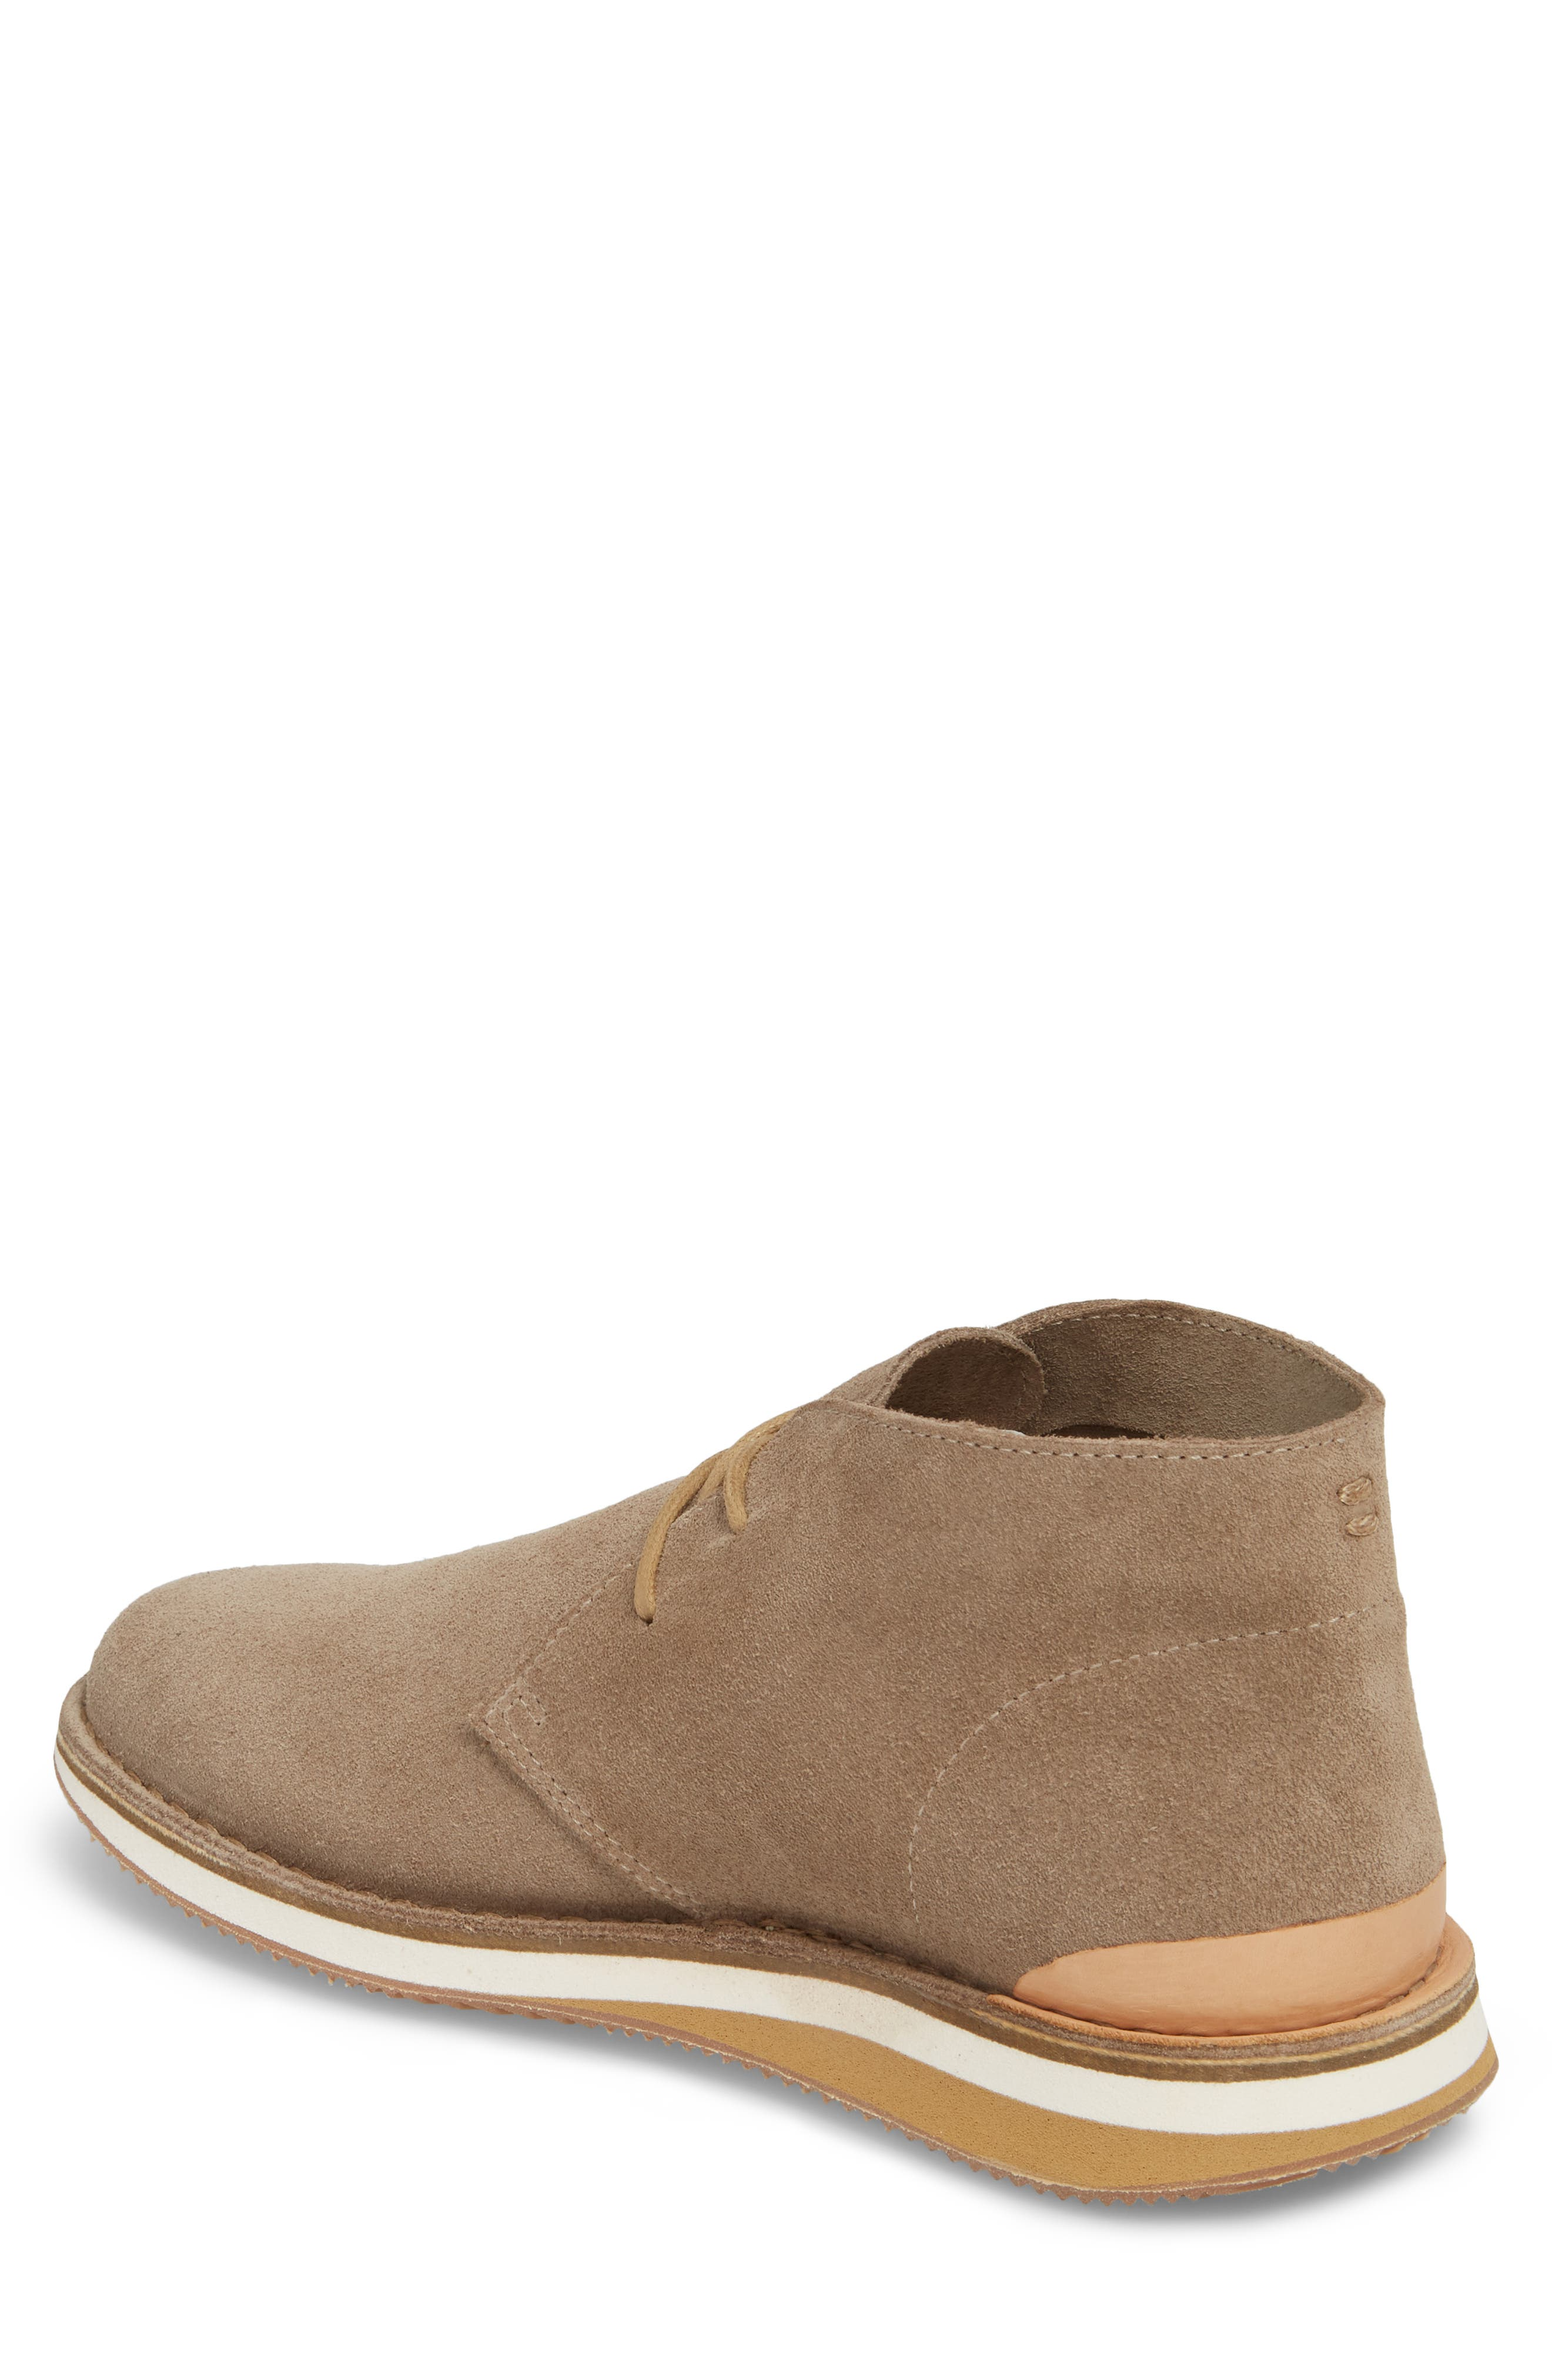 Hirsh Chukka Boot,                             Alternate thumbnail 2, color,                             271